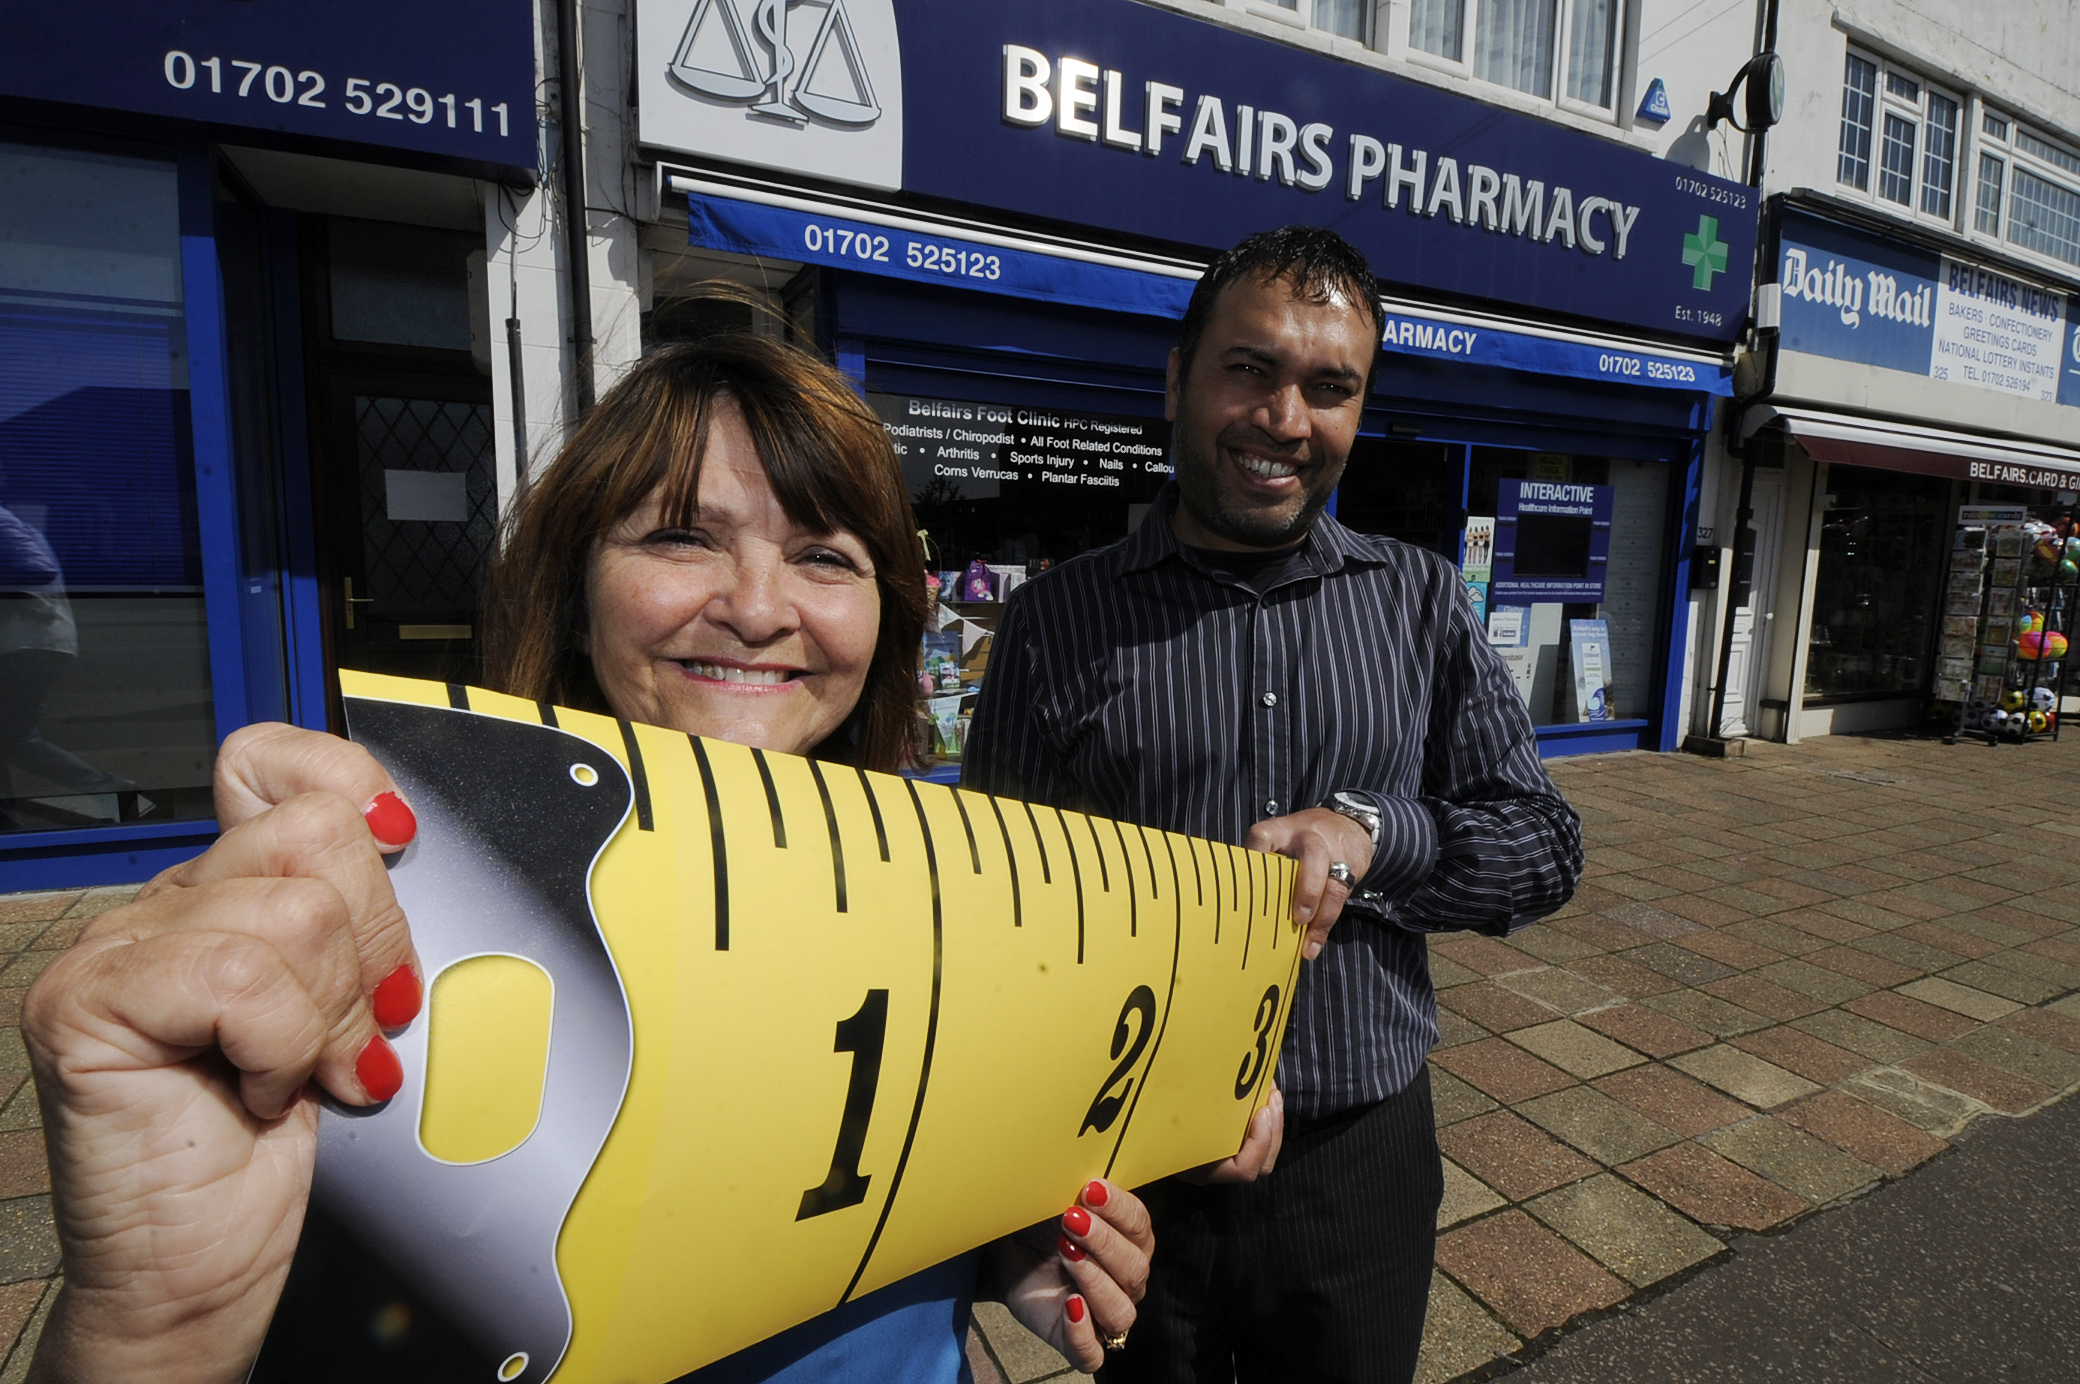 Pop in – Laura Tolley and Fizz Haji of Belfairs Pharmacy